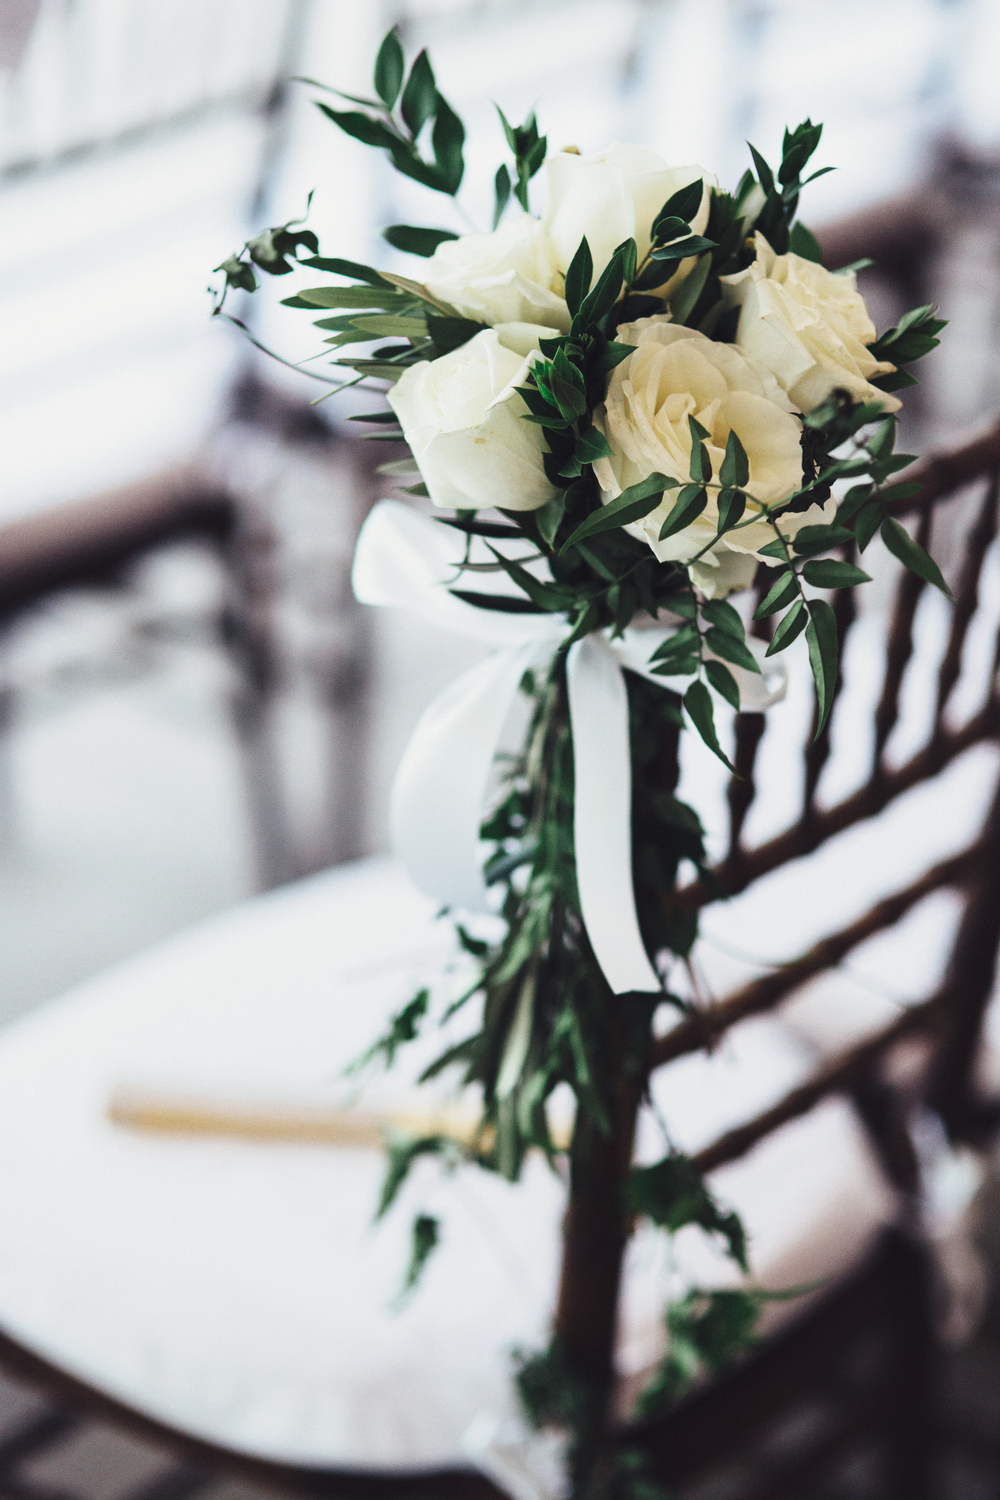 B Floral and Event Design | Full Service Floral and Event Design Company Servicing Maryland, Washington DC, Virginia and Beyond | Sarah Culver Photography